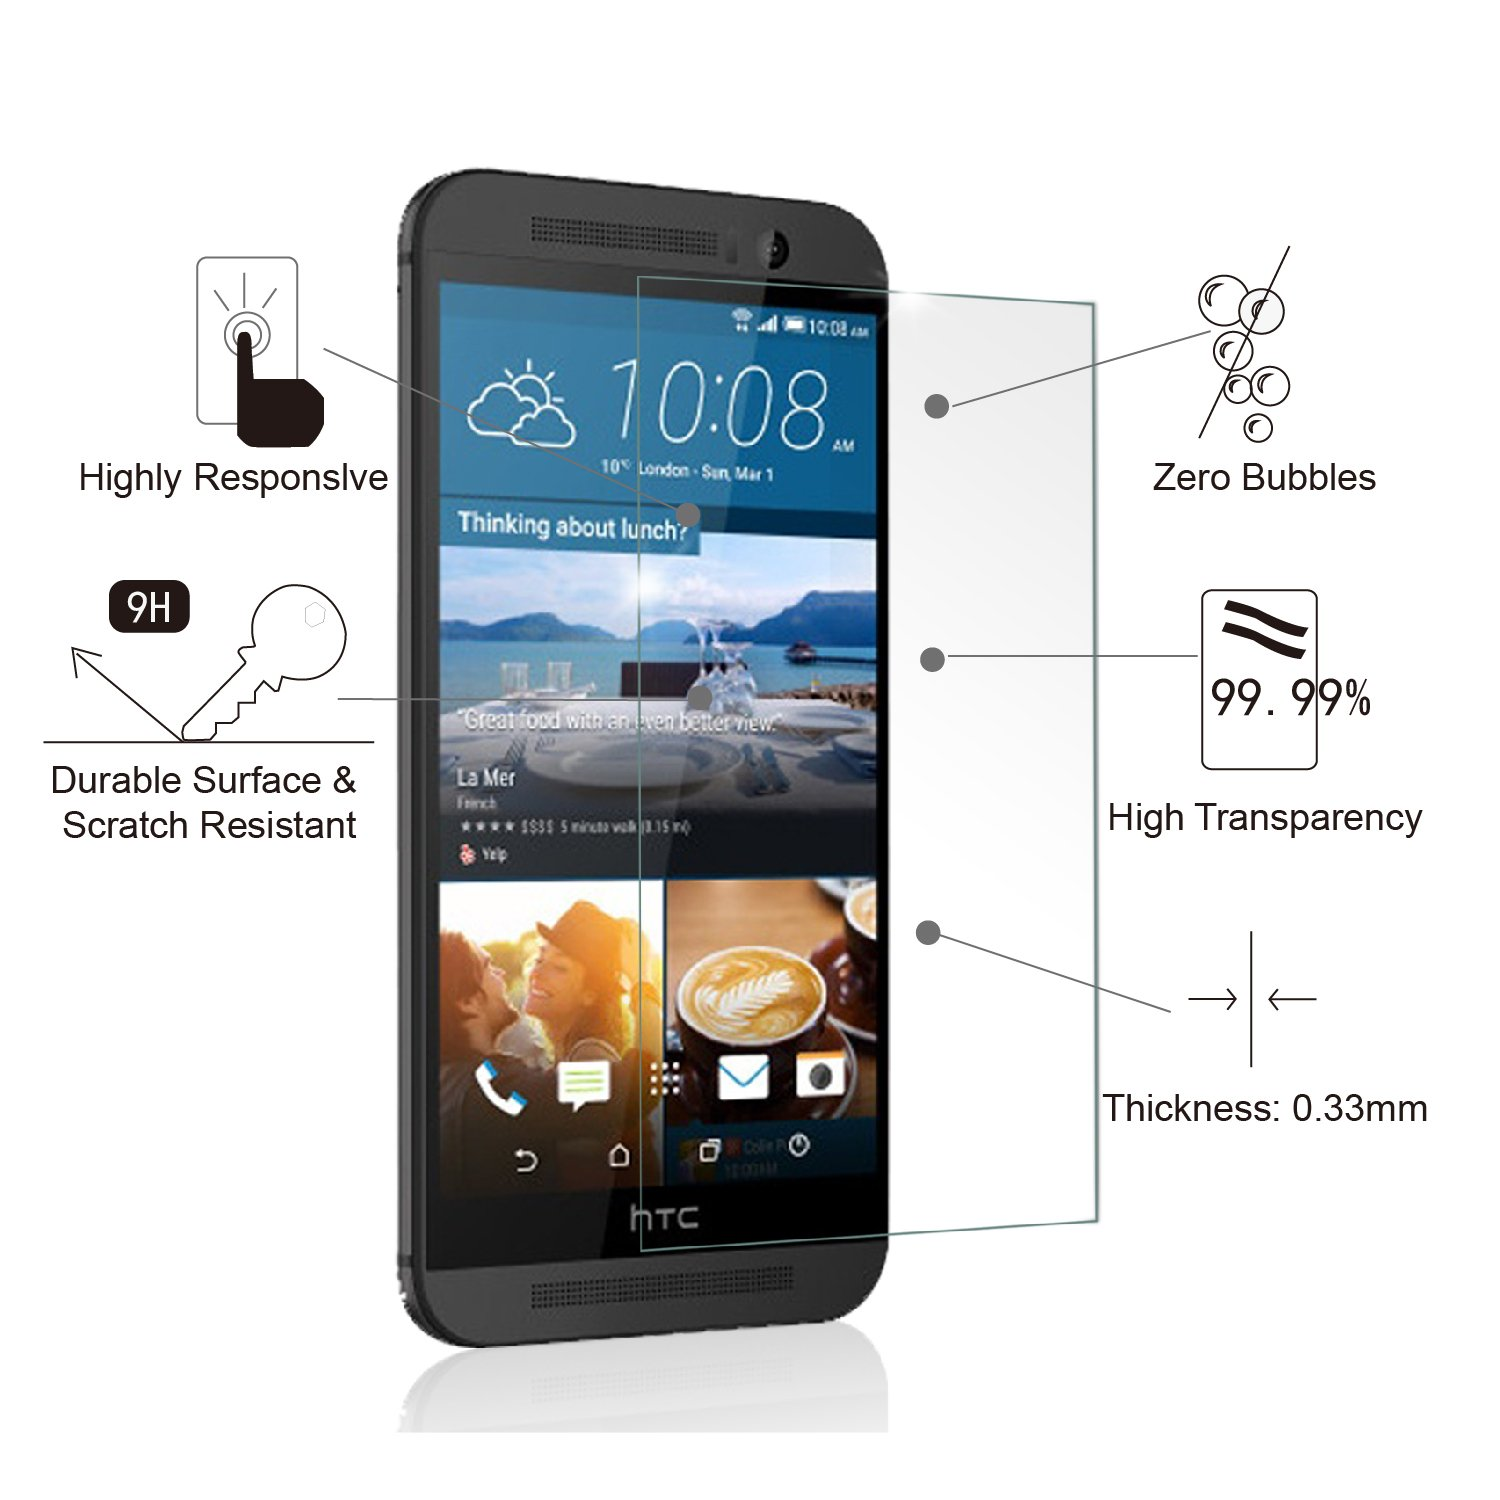 Htc One Diagram Detailed Schematic Diagrams Desire S Circuit Screen Enthusiast Wiring U2022 Features